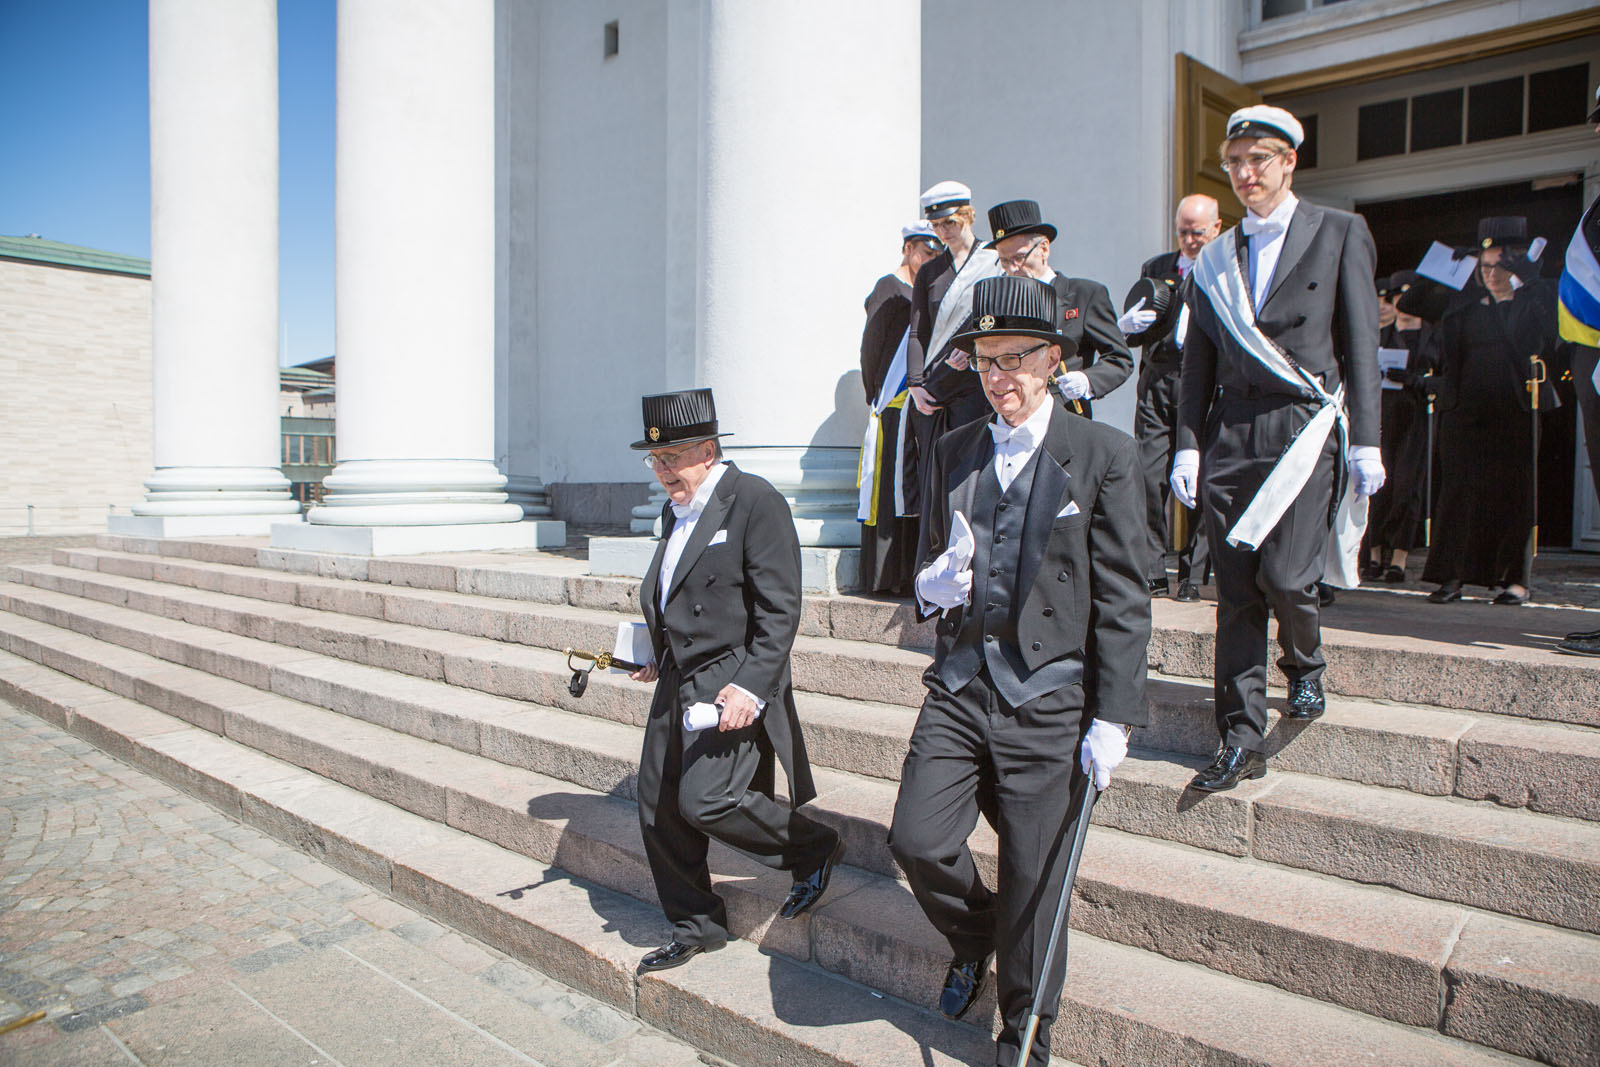 Sociology Professor Douglas Maynard, center, leaves the Great Hall at the University of Helsinki after receiving an honorary doctorate. (Photo: Mikka Verto)